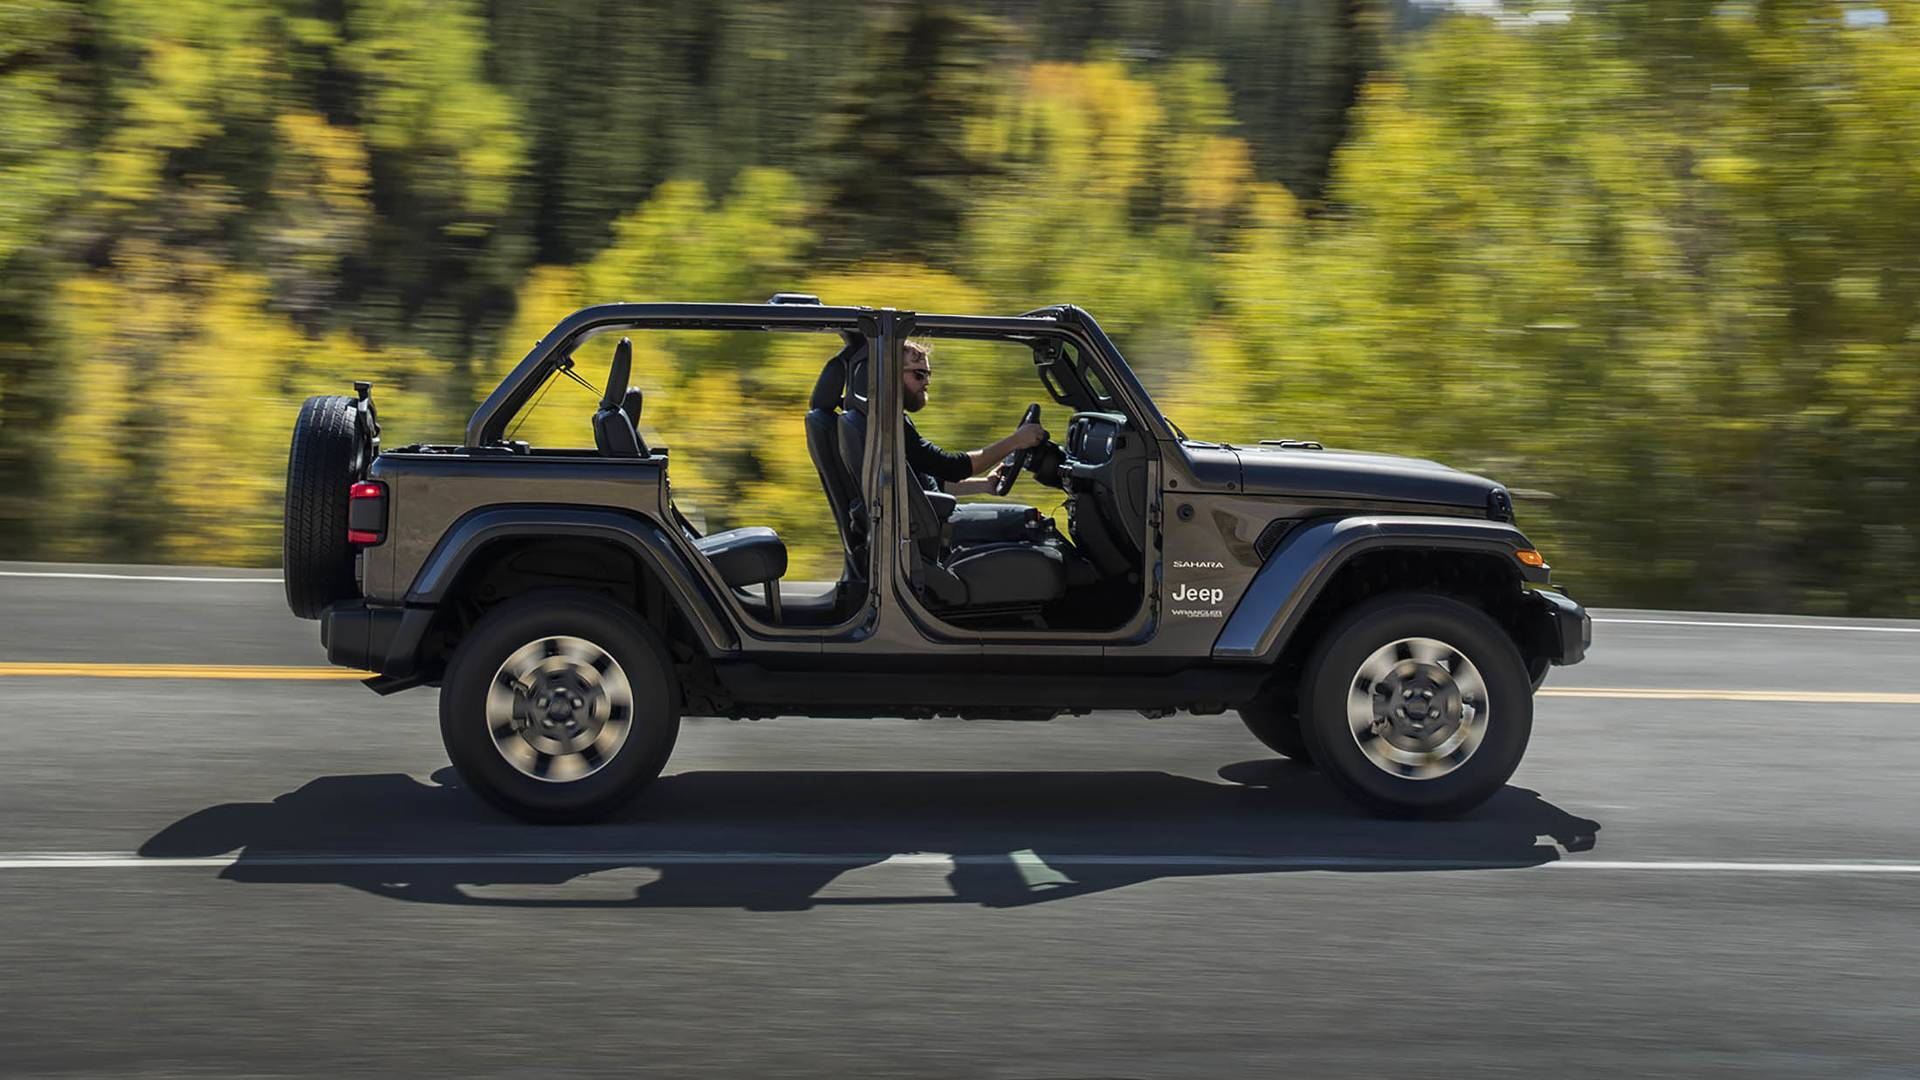 2018 Jeep Wrangler Price List Jl Starts At 26 995 Jlu